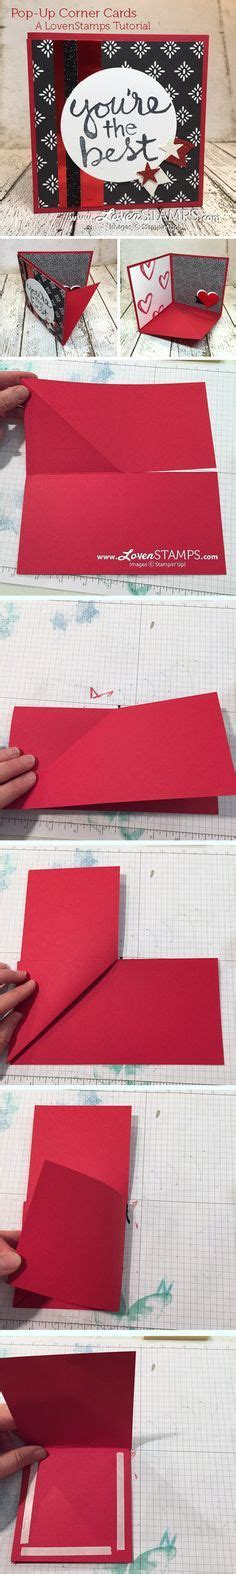 Tutorial Carding Mailer | 1065 best images about handmade pop up cards on pinterest